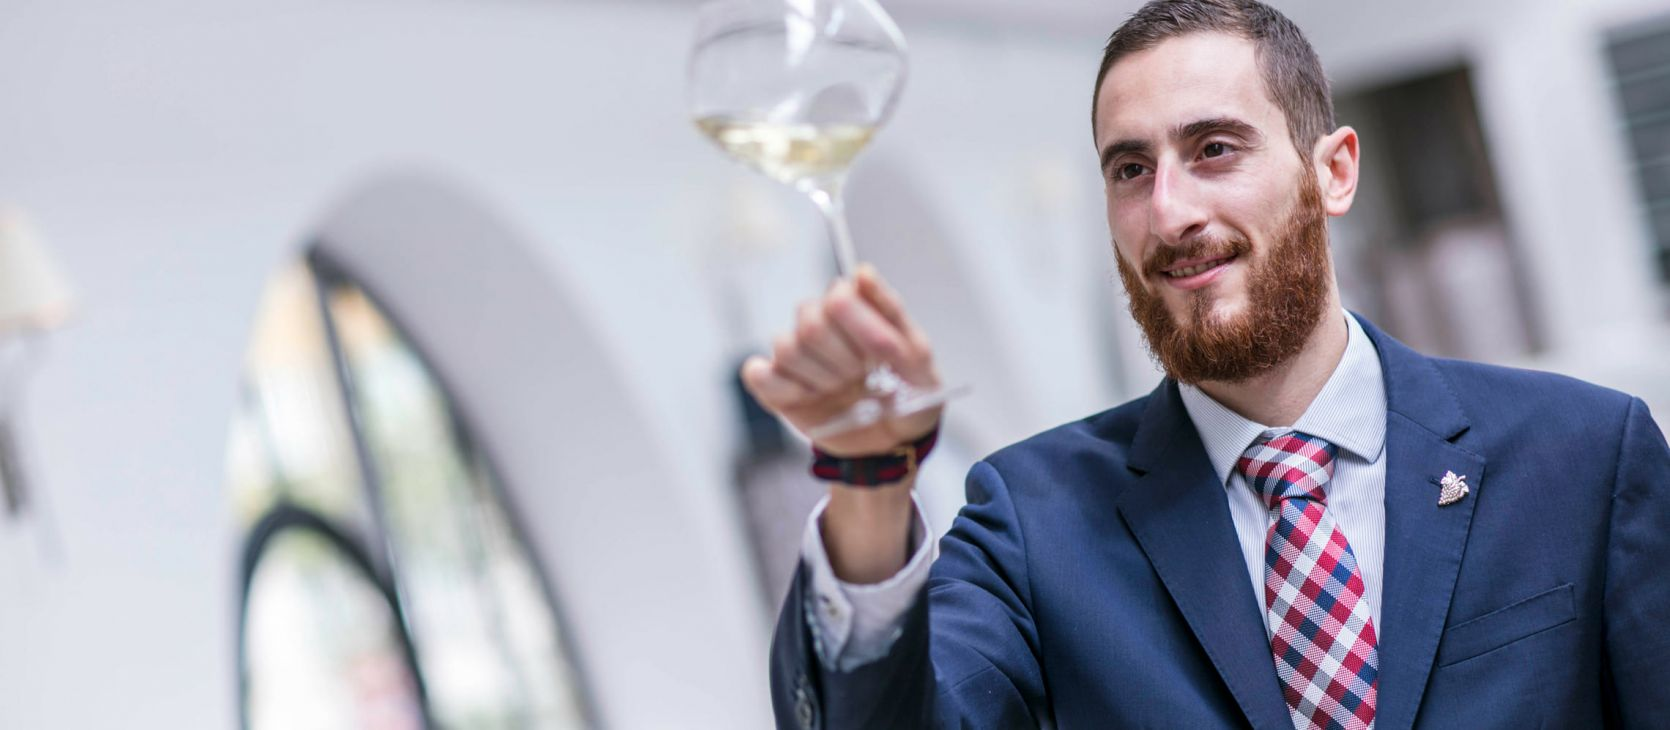 Photo for: Insights from Nicola Perrone, Head Sommelier at The Orrery, London